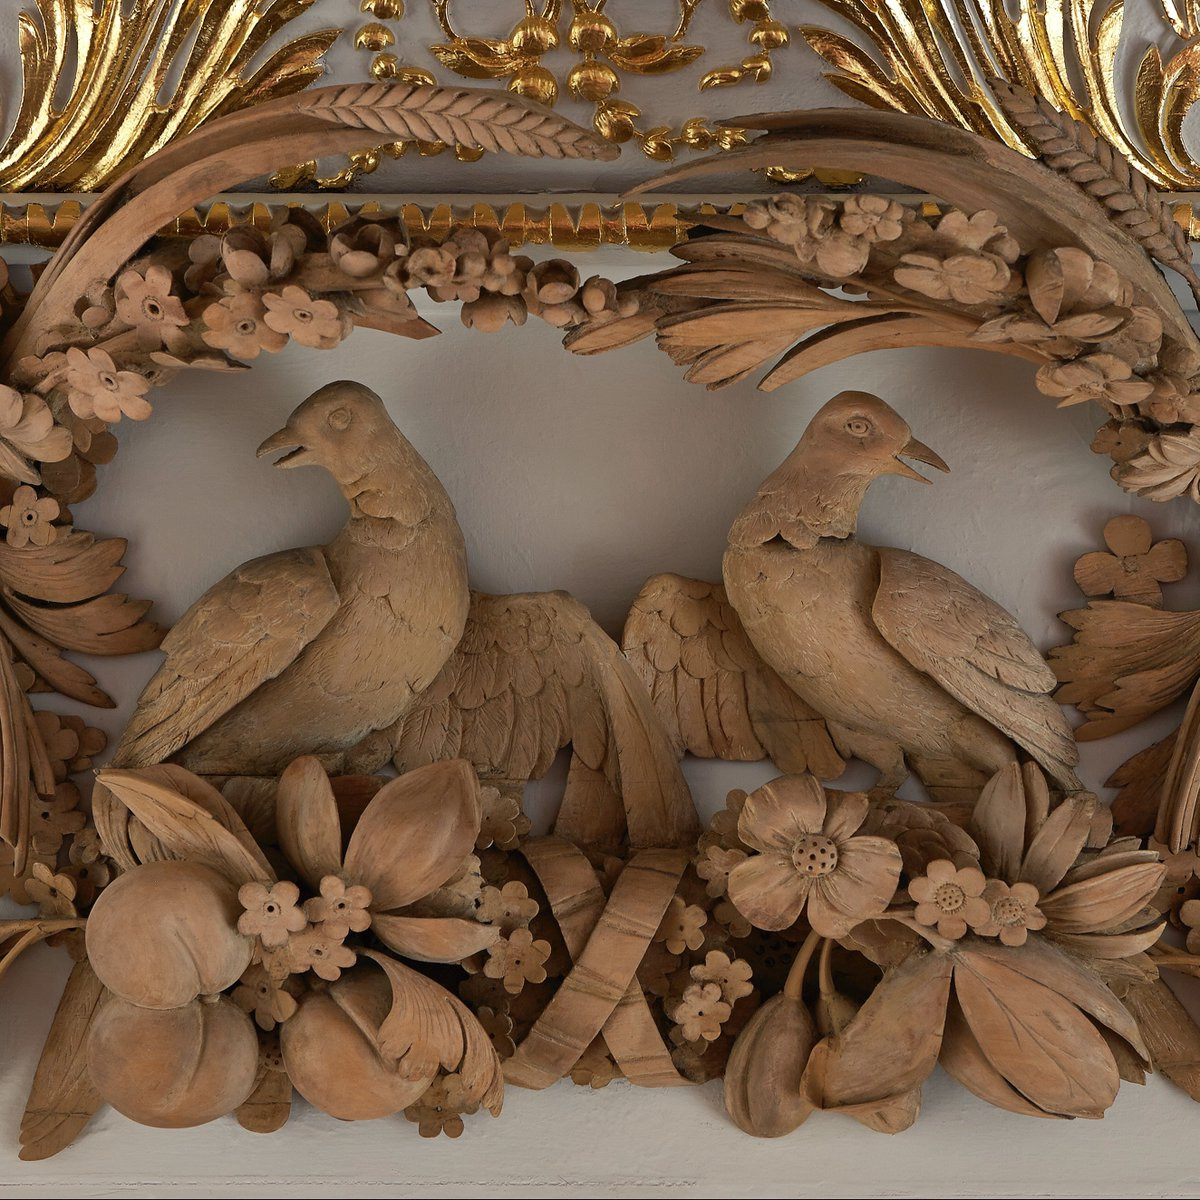 #OTD in 1721, master sculptor and woodcarver Grinling Gibbons died in London. Today you can find his amazingly intricate carvings in wood and stone throughout interiors at #HamptonCourtPalace and #KensingtonPalace. Just look at the level of detail! pic.twitter.com/dfBfSQIWTH